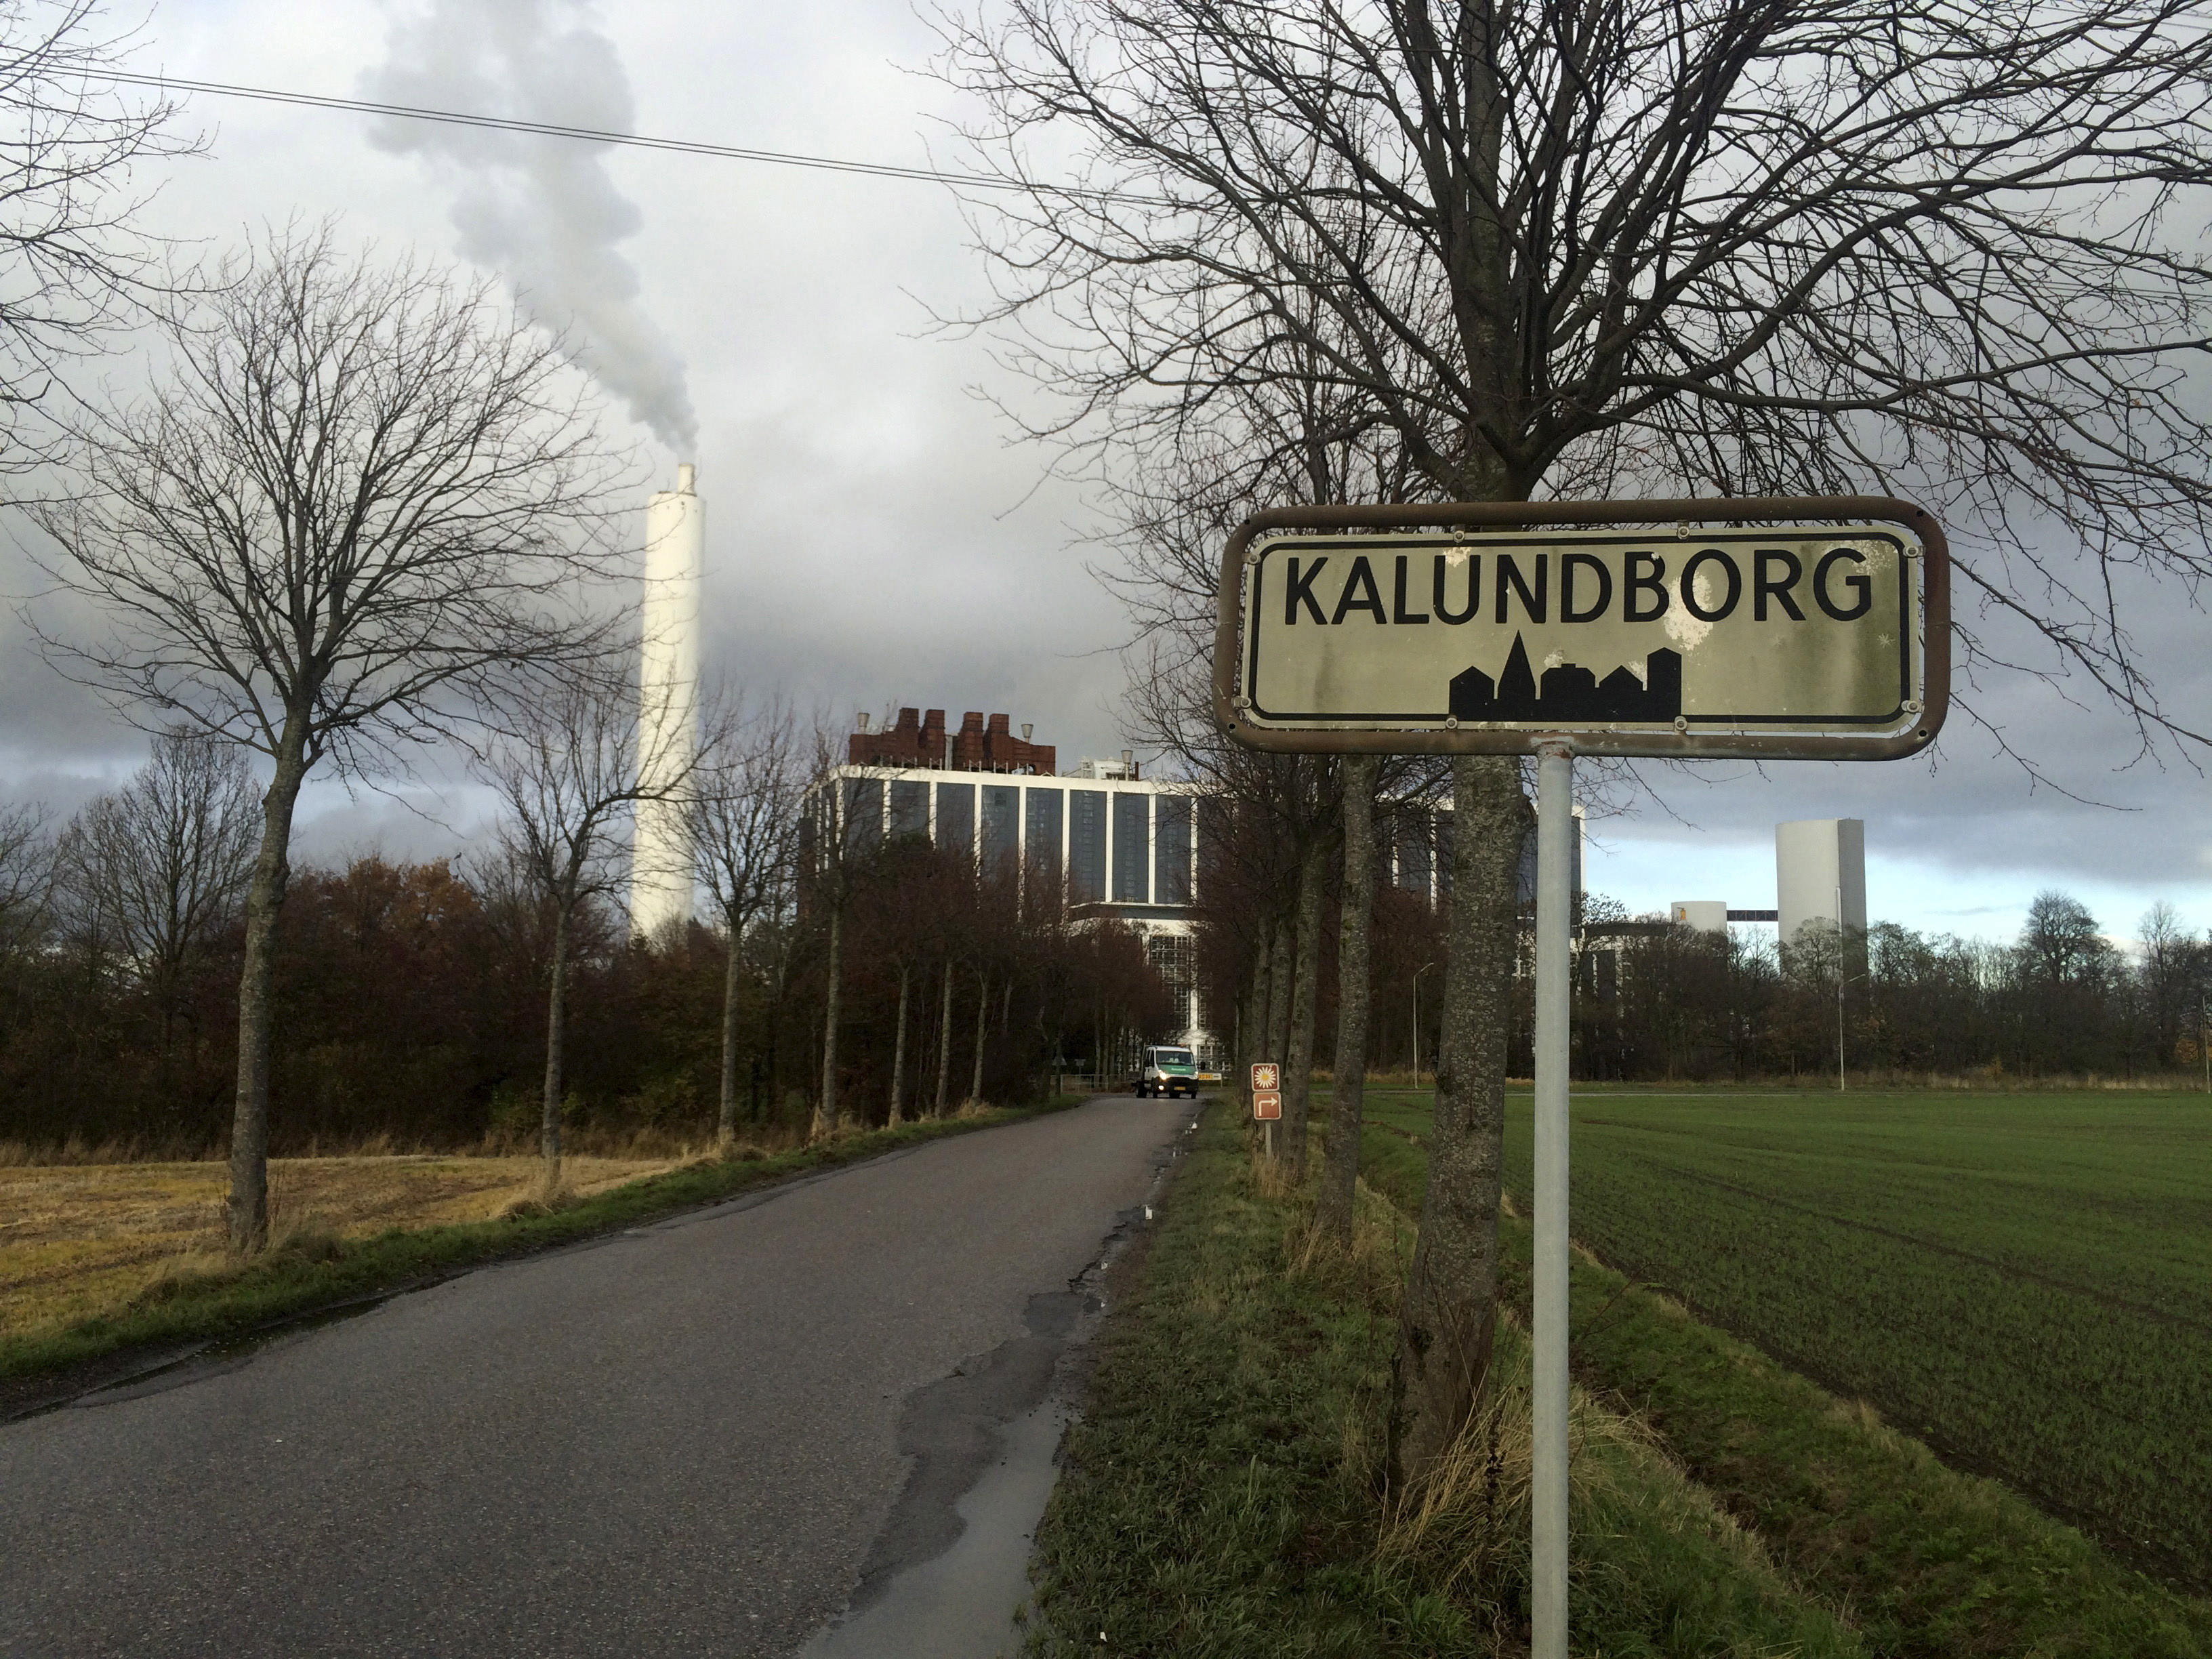 A car drives in front of DONG Energy's power station, which provides steam, ash and gypsum as waste products to other companies for their use in Kalundborg, Denmark, November 20, 2015. As pioneers of so-called industrial symbiosis, these companies swap waste and byproducts to cut costs and carbon dioxide (CO2) emissions profitably -- an approach that offers big business a financial incentive that could be crucial to nations striving to meet targets agreed at this month's global climate summit. Their success has attracted attention globally, with more than 30 corporate and municipal delegations from 20 countries visiting the town this year, including mayors from China's fast-growing Guandong province. To match story INDUSTRY-EMISSIONS/    REUTERS/Sabina Zawadzki - RTX1ZA4G